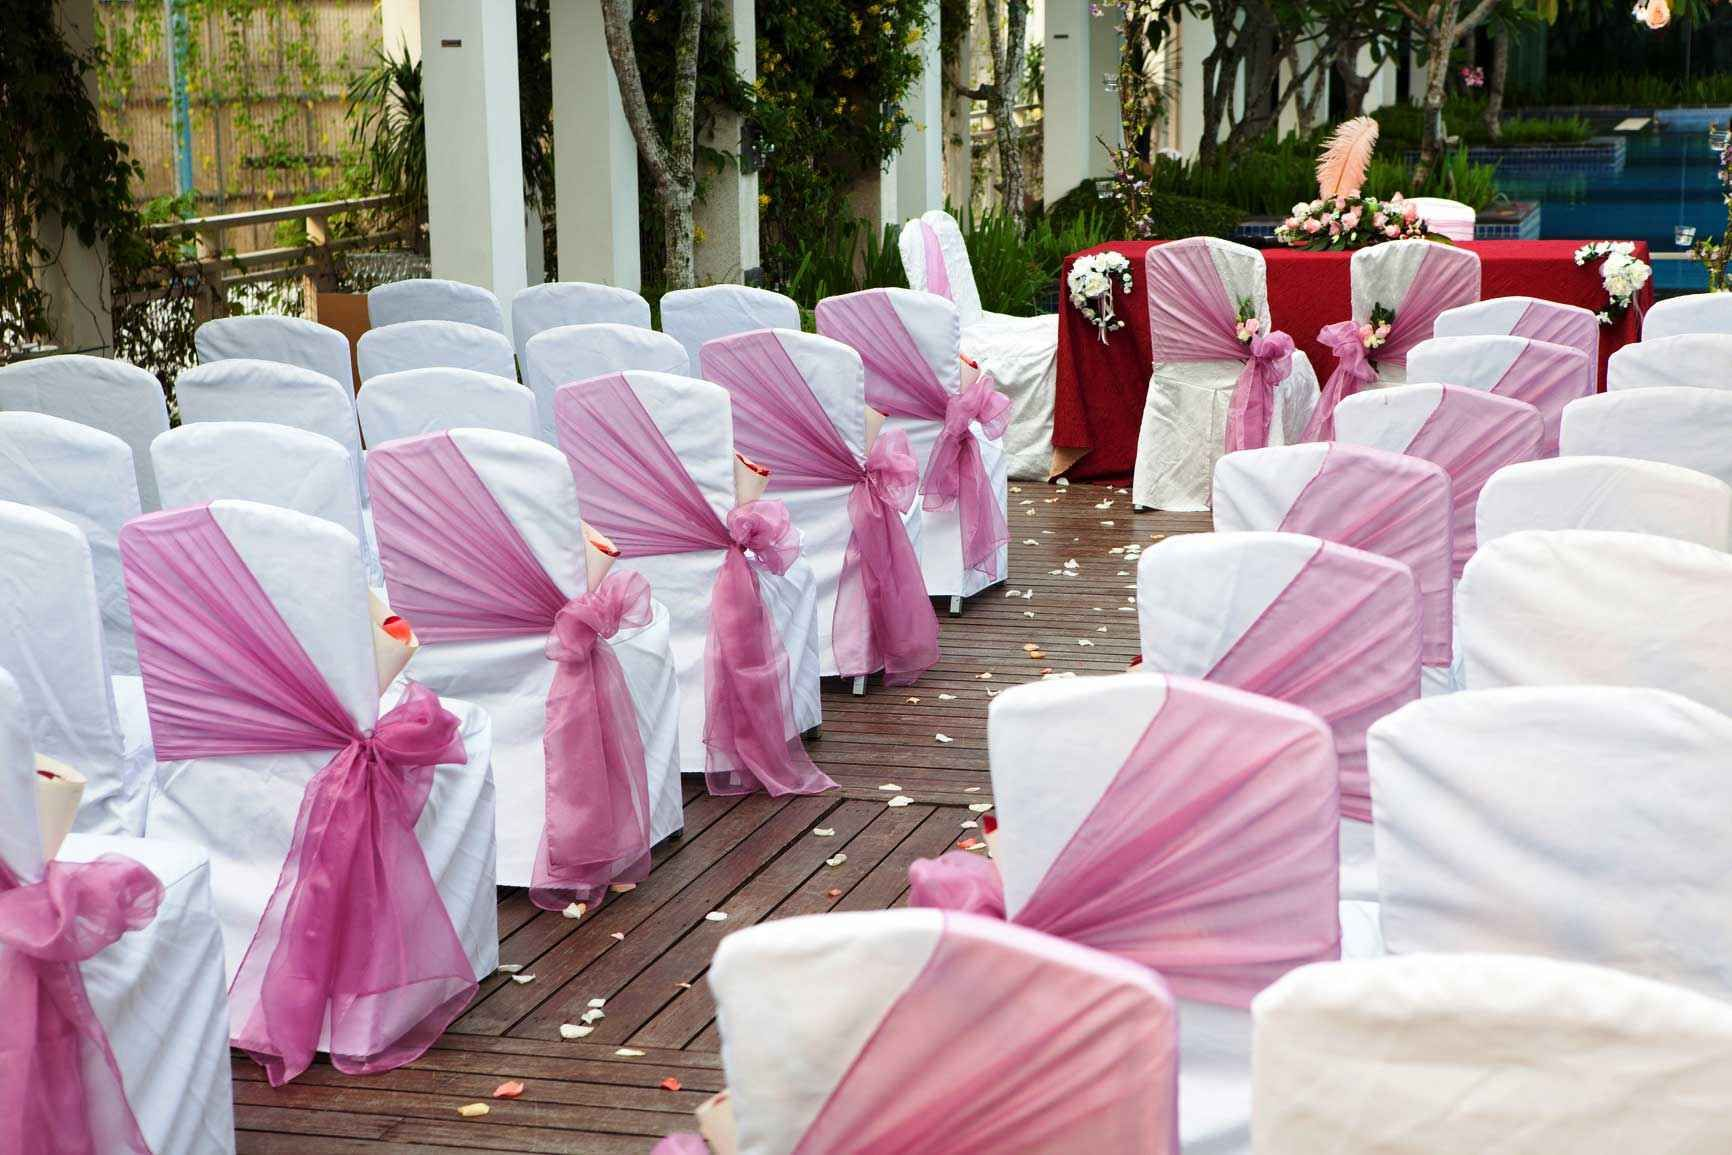 Wedding Decoration Tulle Wedding Decoration Ideas Chair Covers Tulle Wedding Chair Decorations Tulle Wedding Decorations Chair Decorations